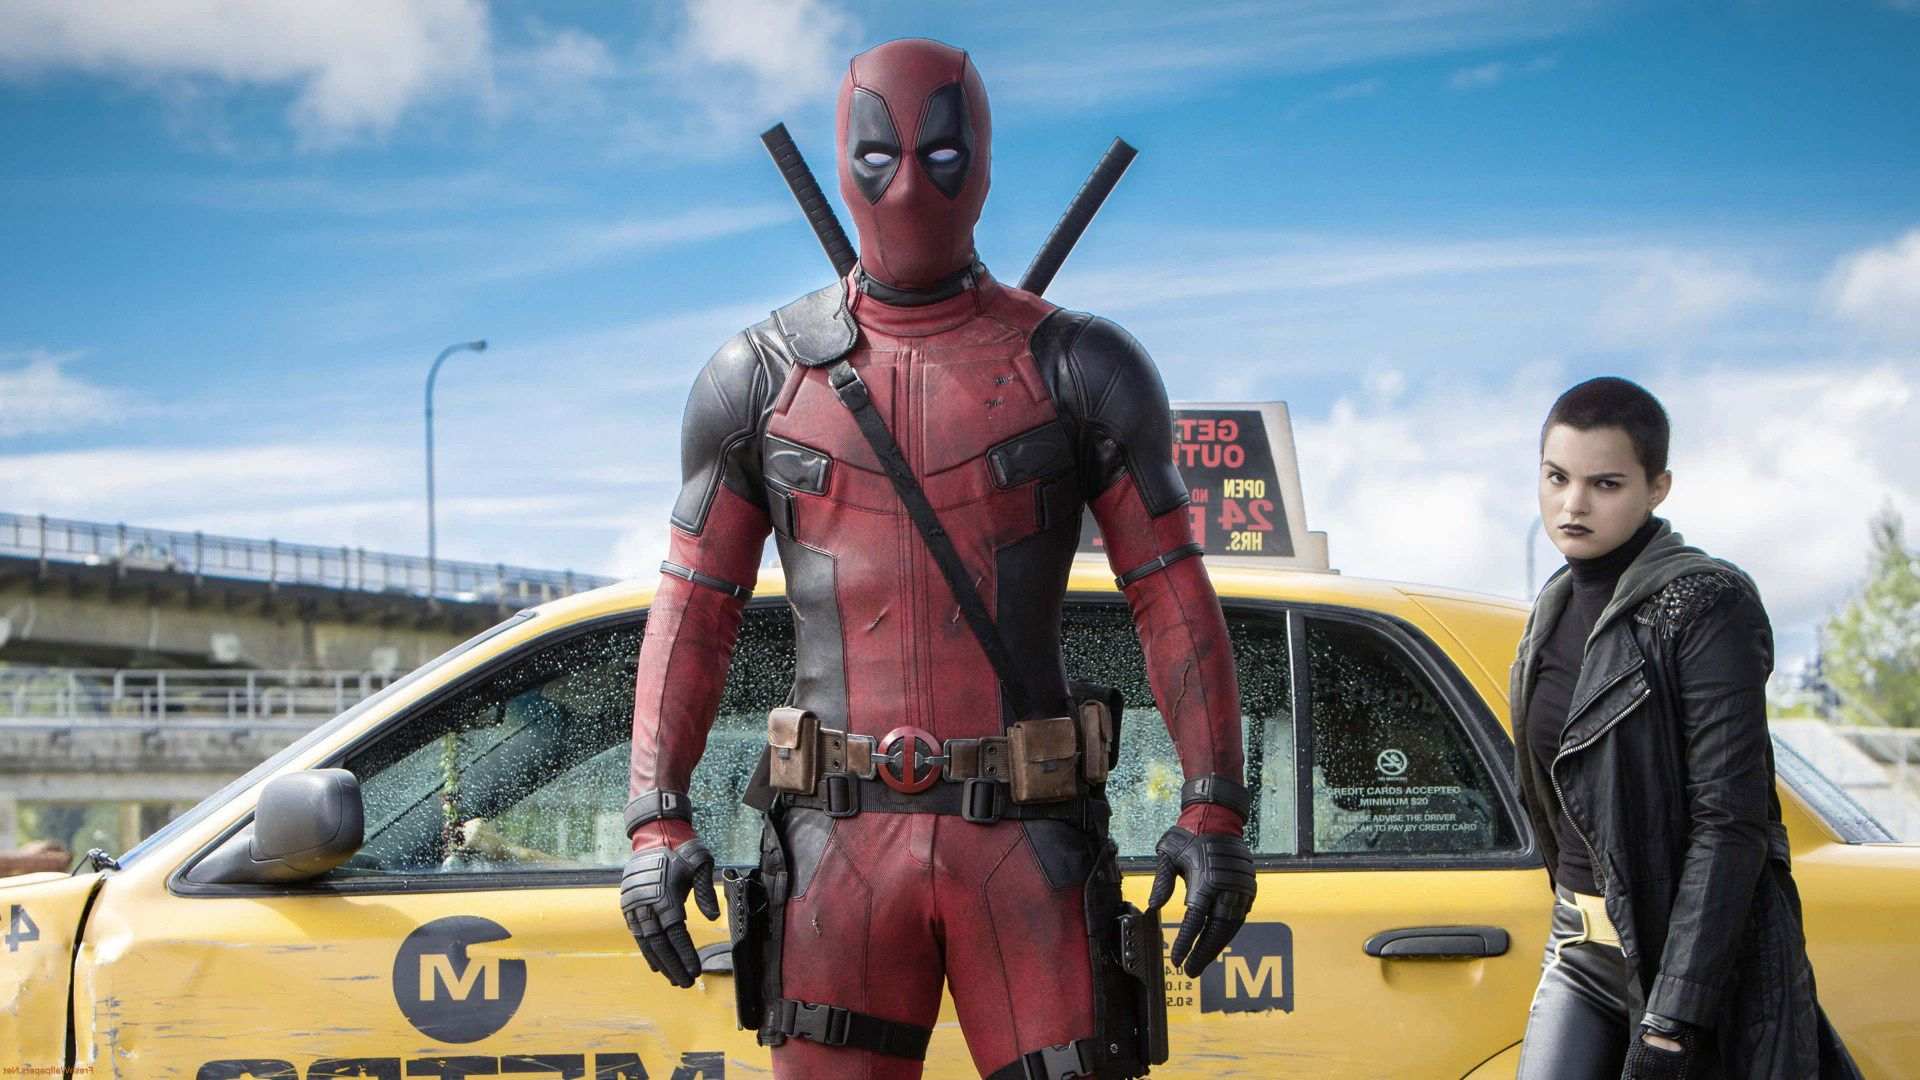 Deadpool Movie Wallpaper HD Wallpapers Available In Different Resolution And Sizes For Our Computer Desktop